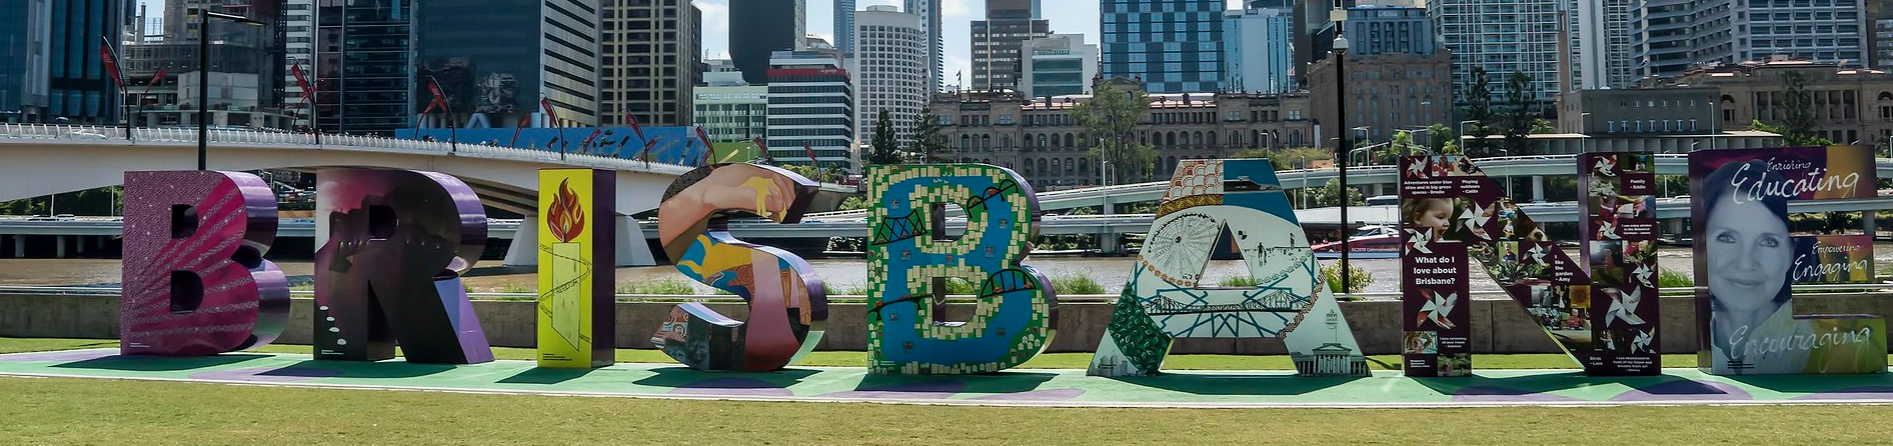 What is Brisbane famous for?